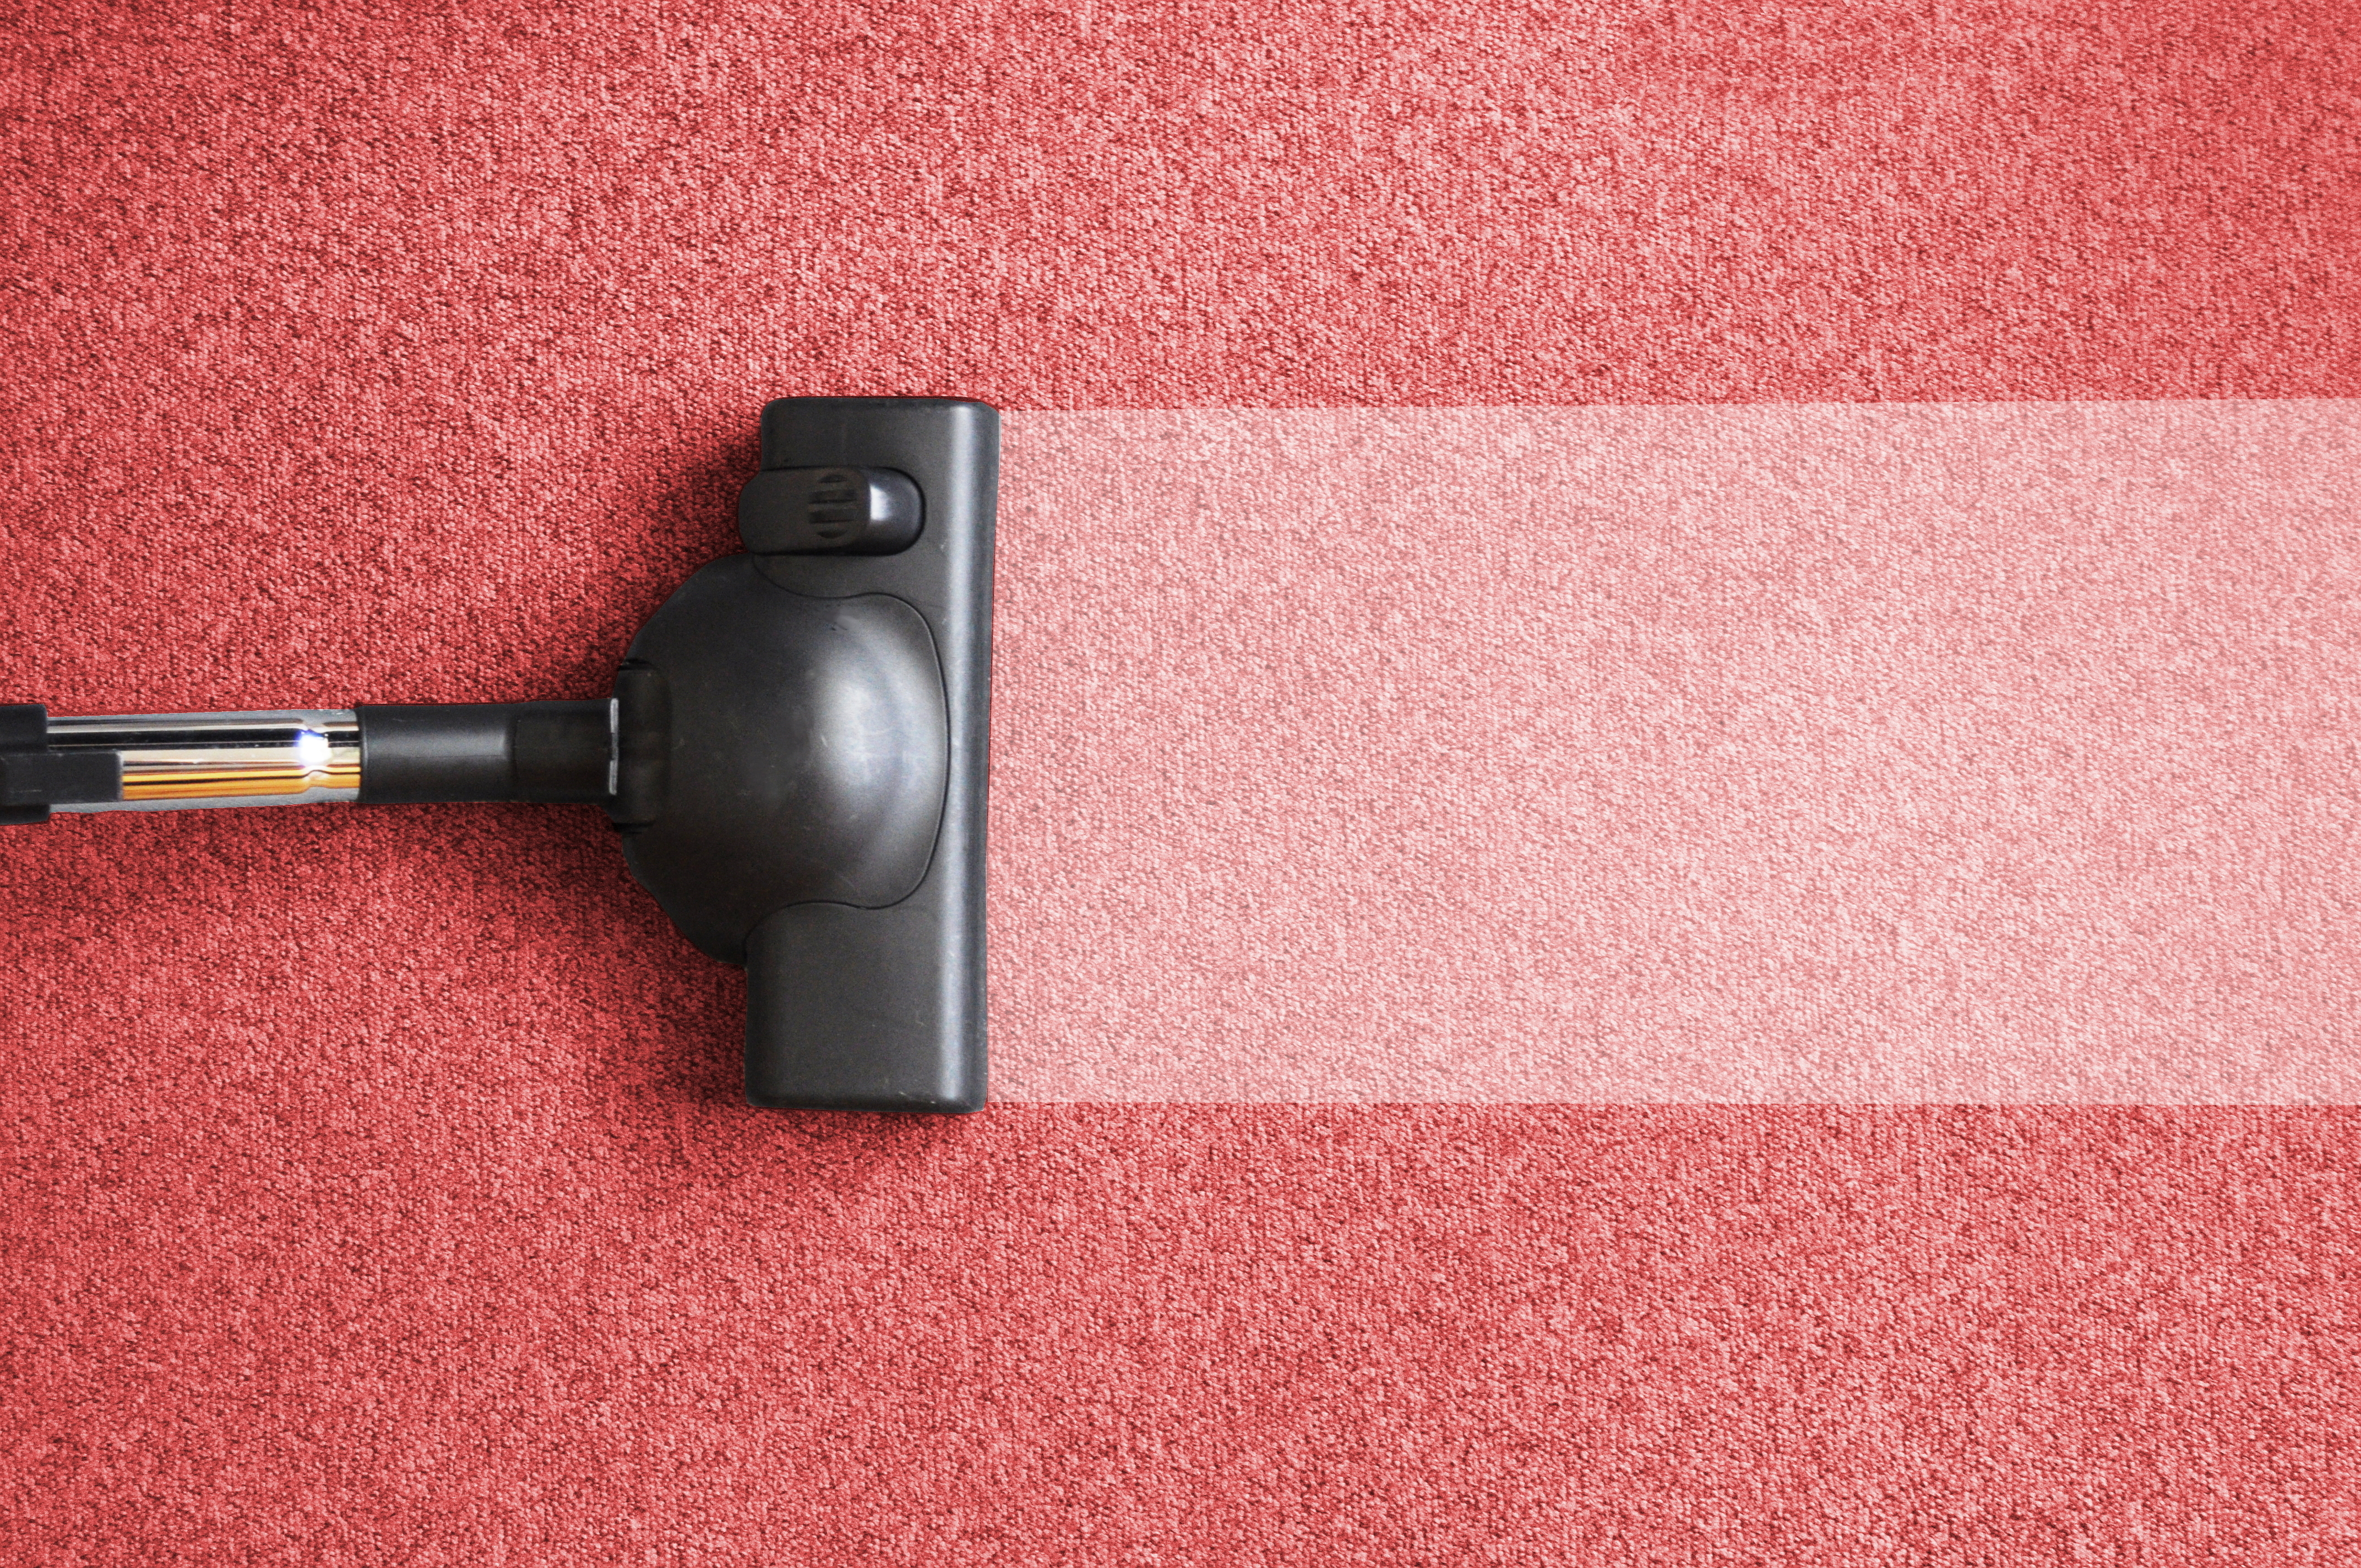 Carpet Cleaning Service in NJ Offers a Look at What's Living in your Carpet